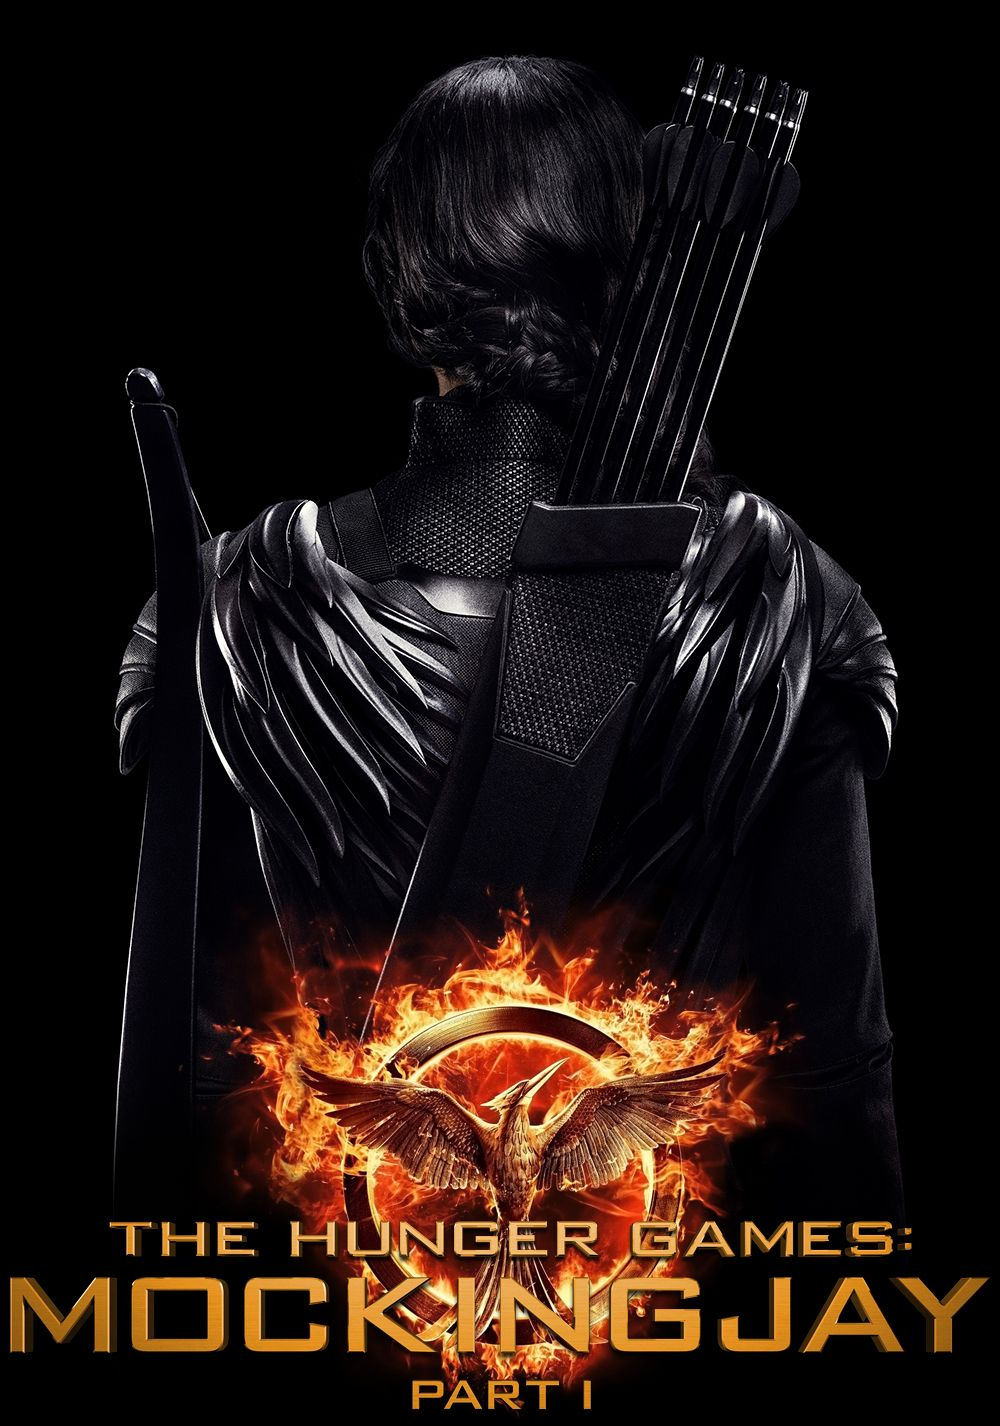 The Hunger Games Mockingjay Part 1 Full Movie Download